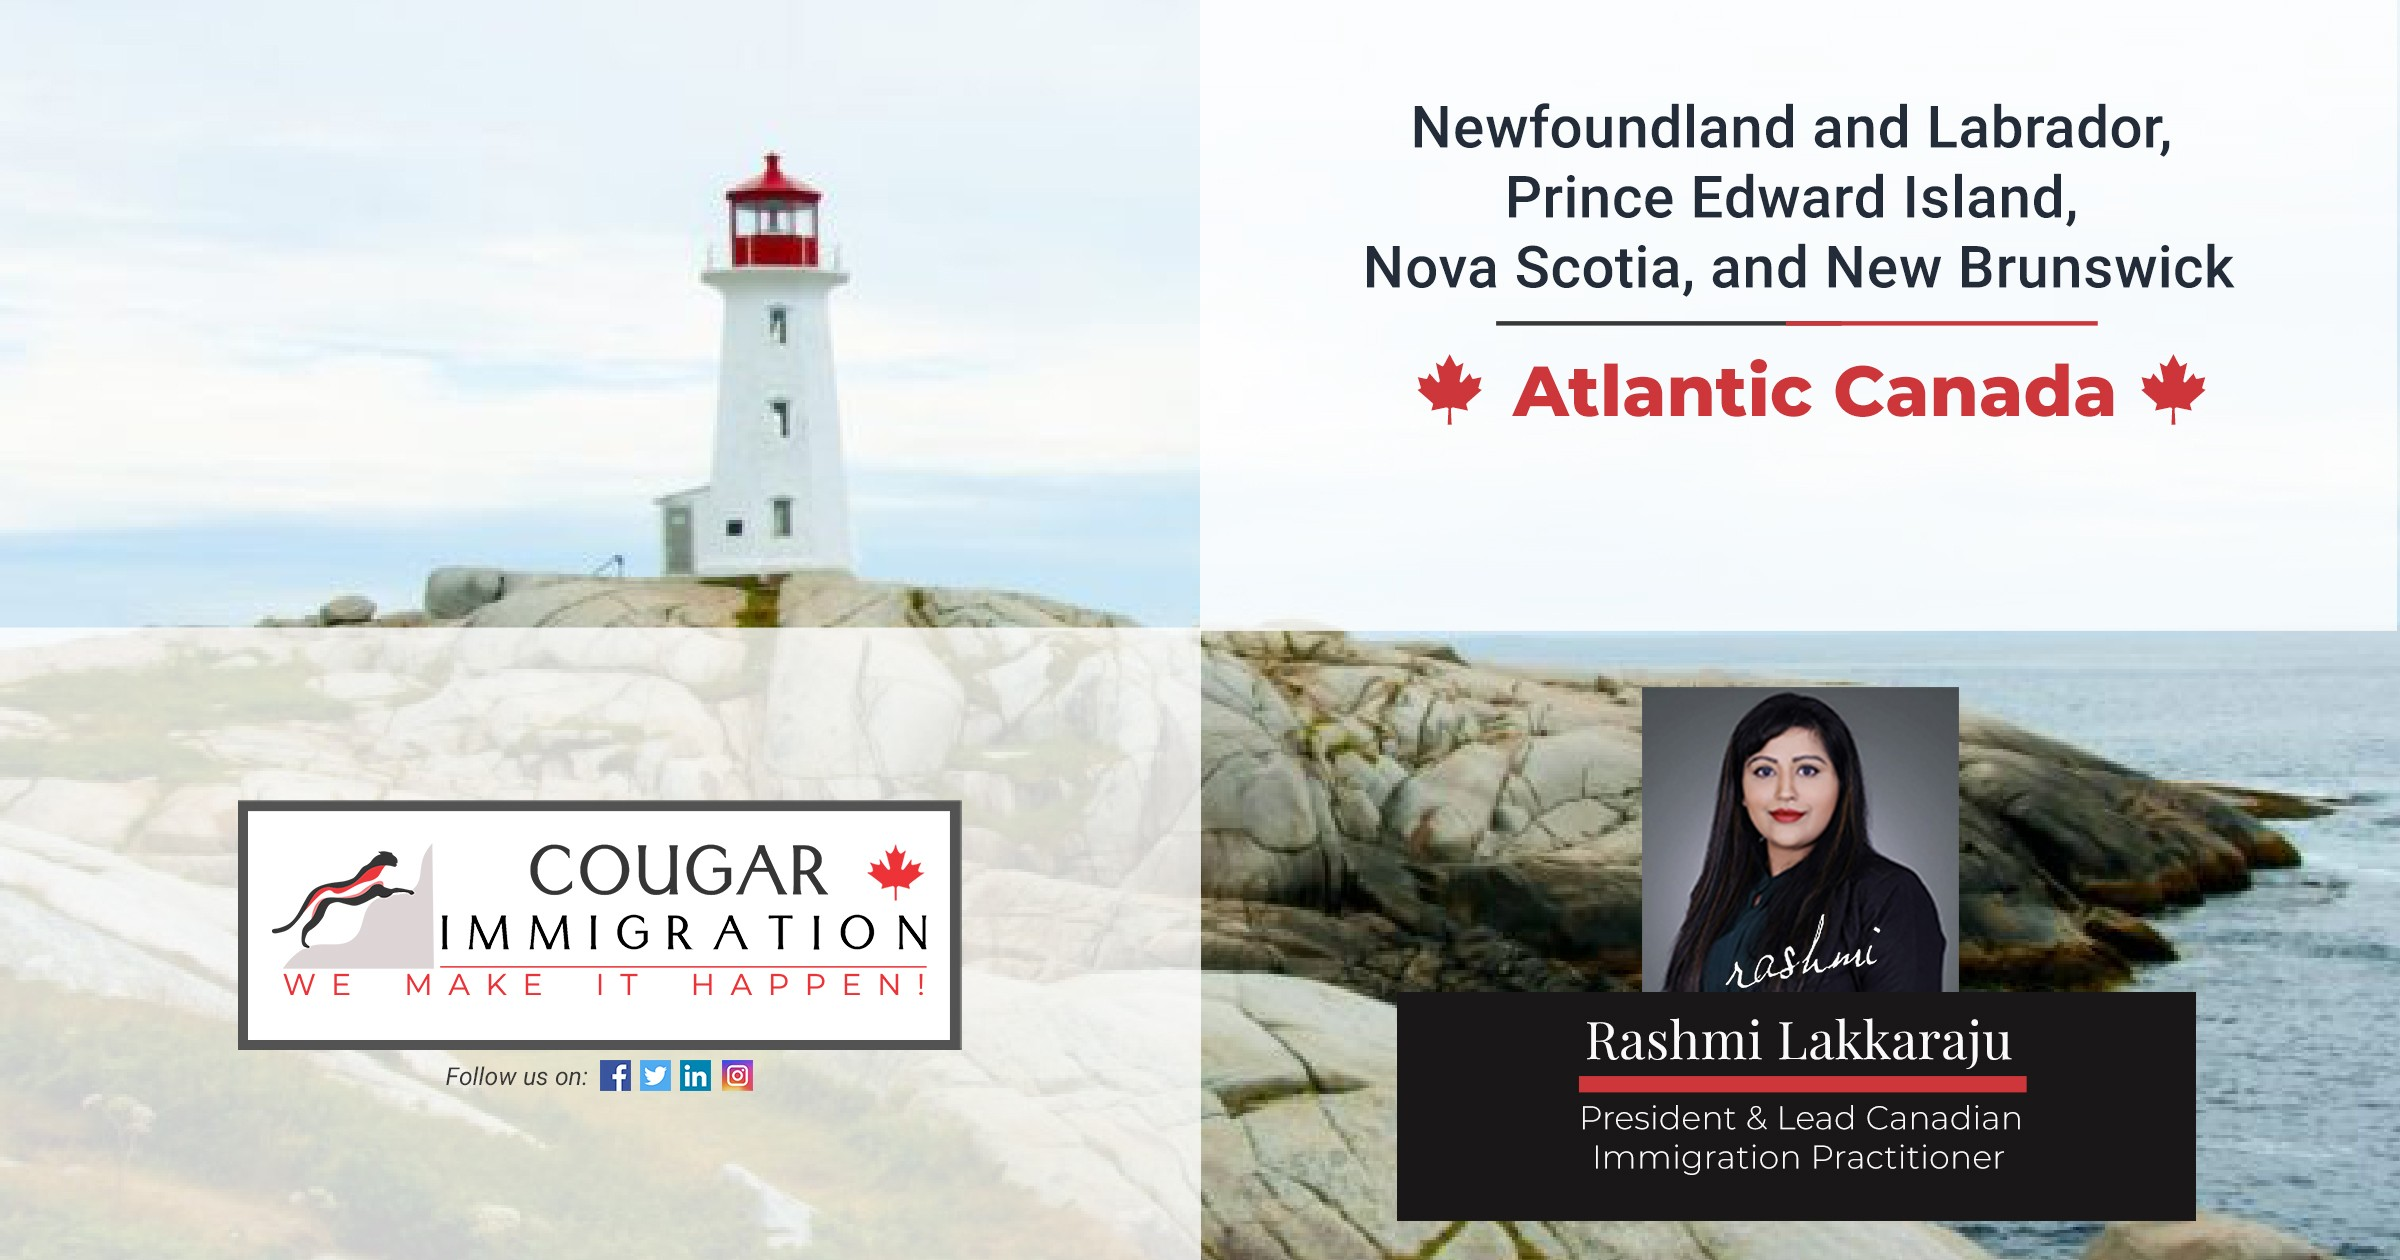 Atlantic Canada is experiencing an immigration revolution thumbnail